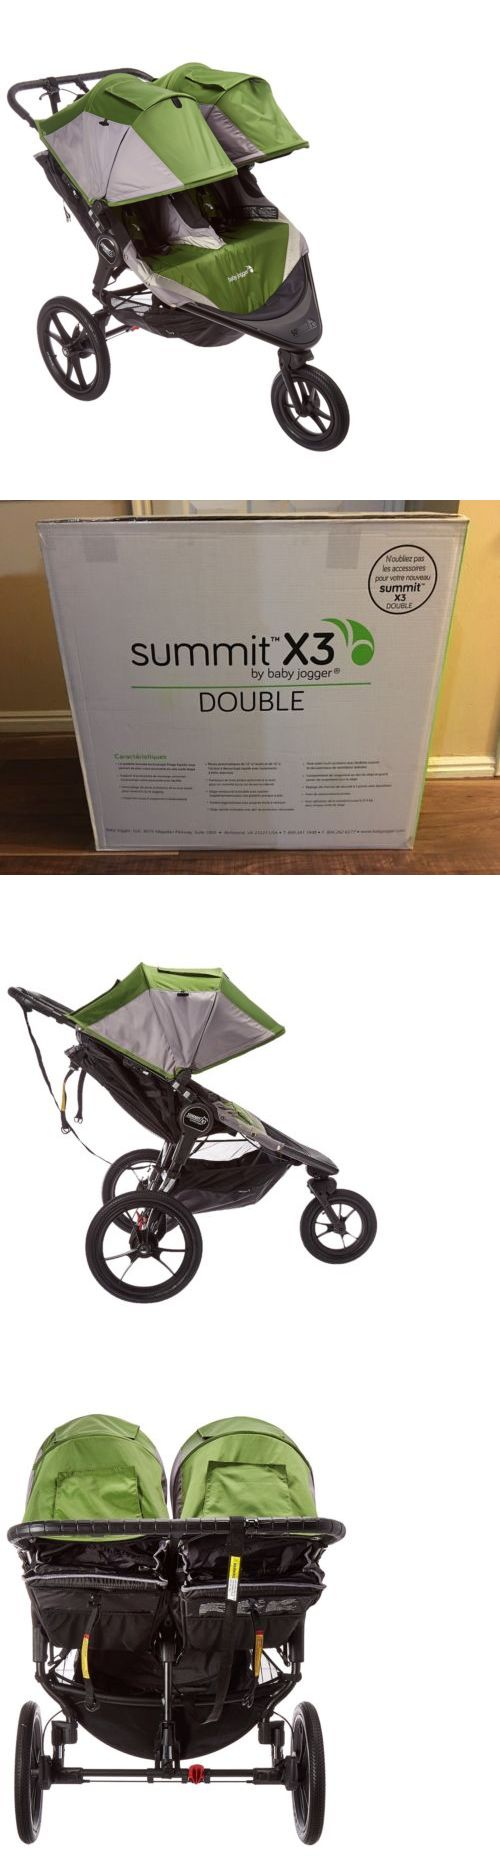 baby kid stuff: New 2016 Baby Jogger Summit X3 Double Stroller (Green) Free Shipping -> BUY IT NOW ONLY: $519 on eBay!